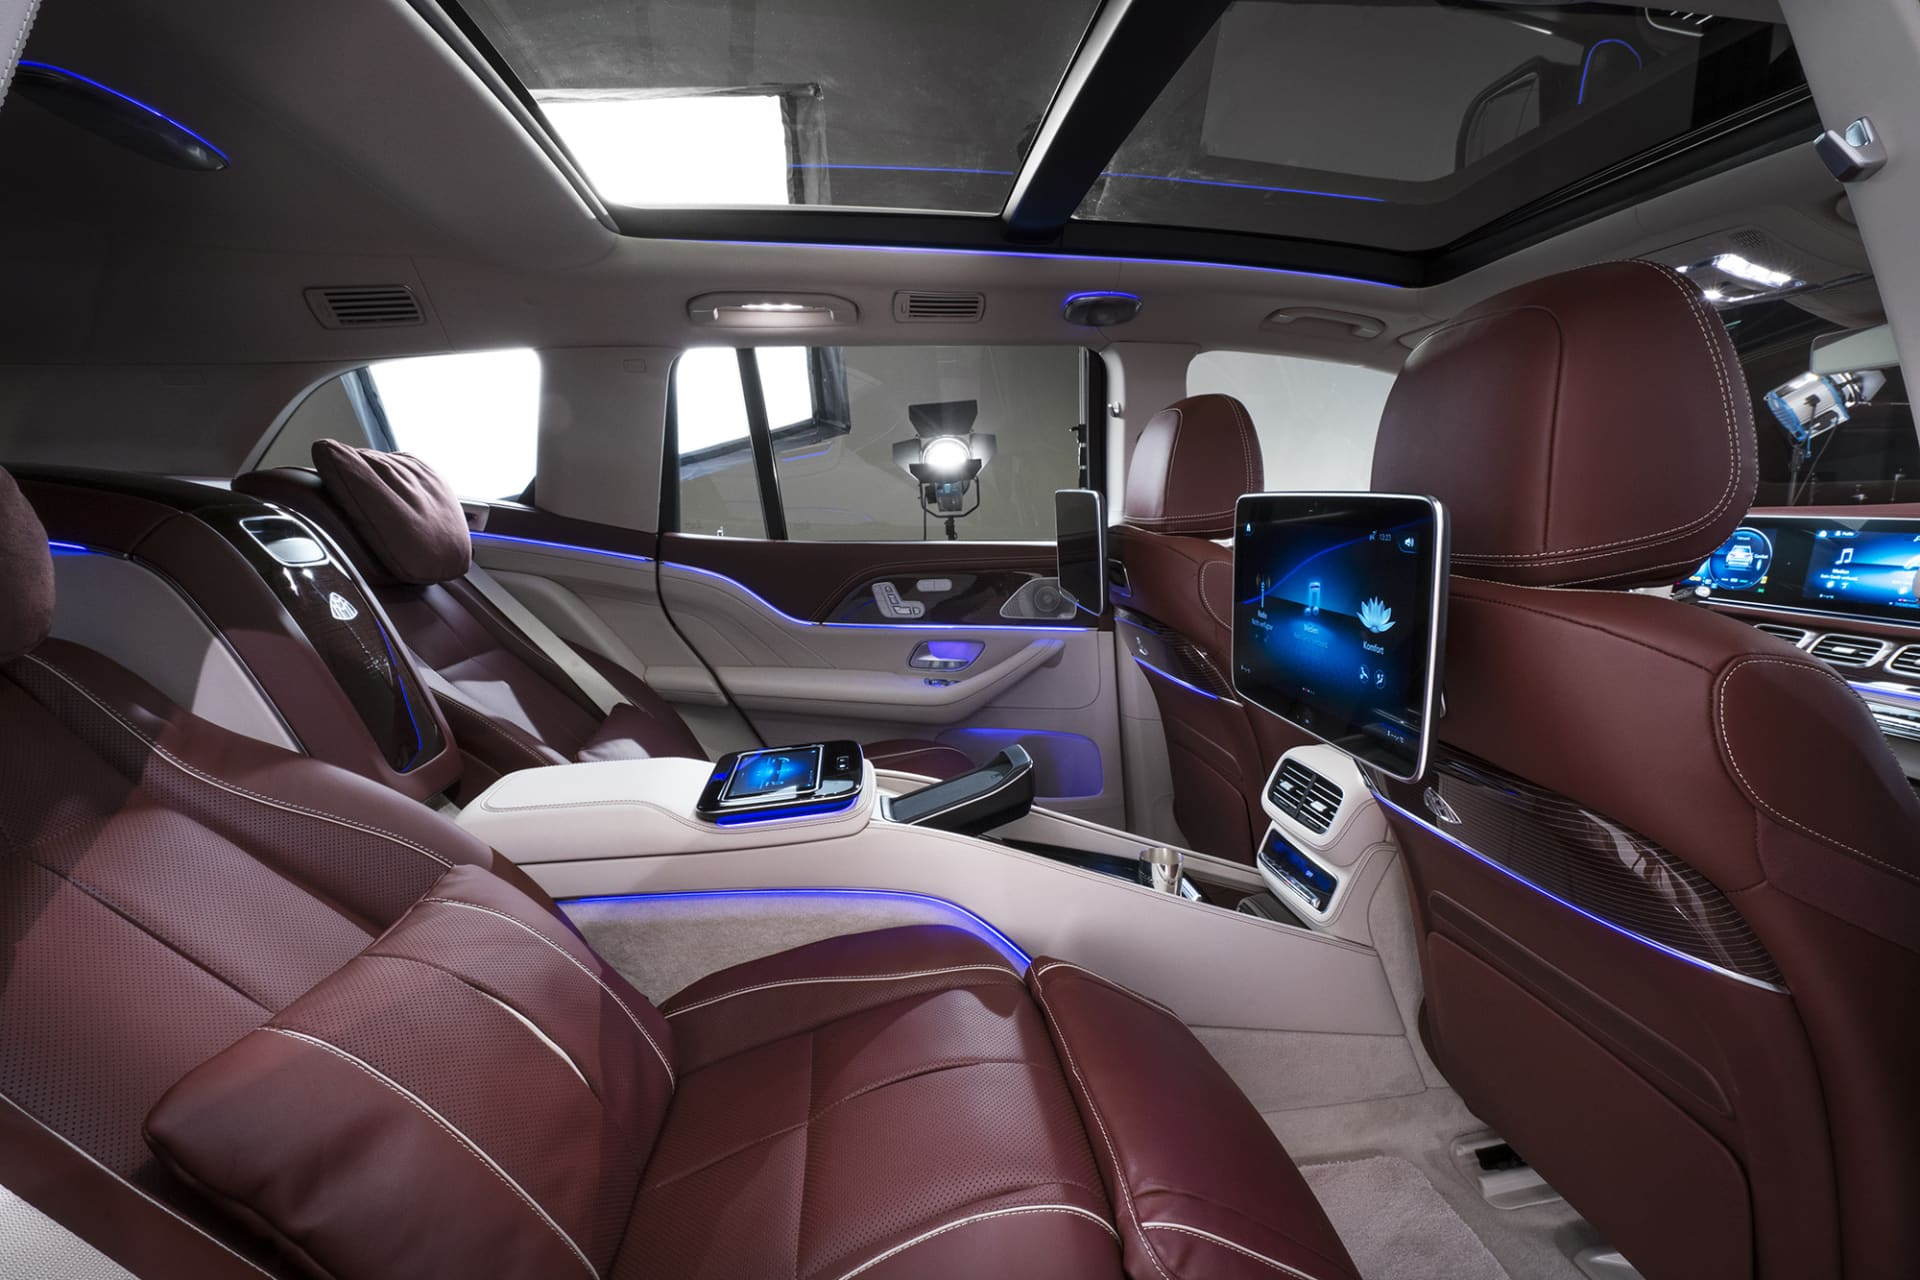 The rear seat of the Maybach GLS can be rather be taken for a private jet than a car.